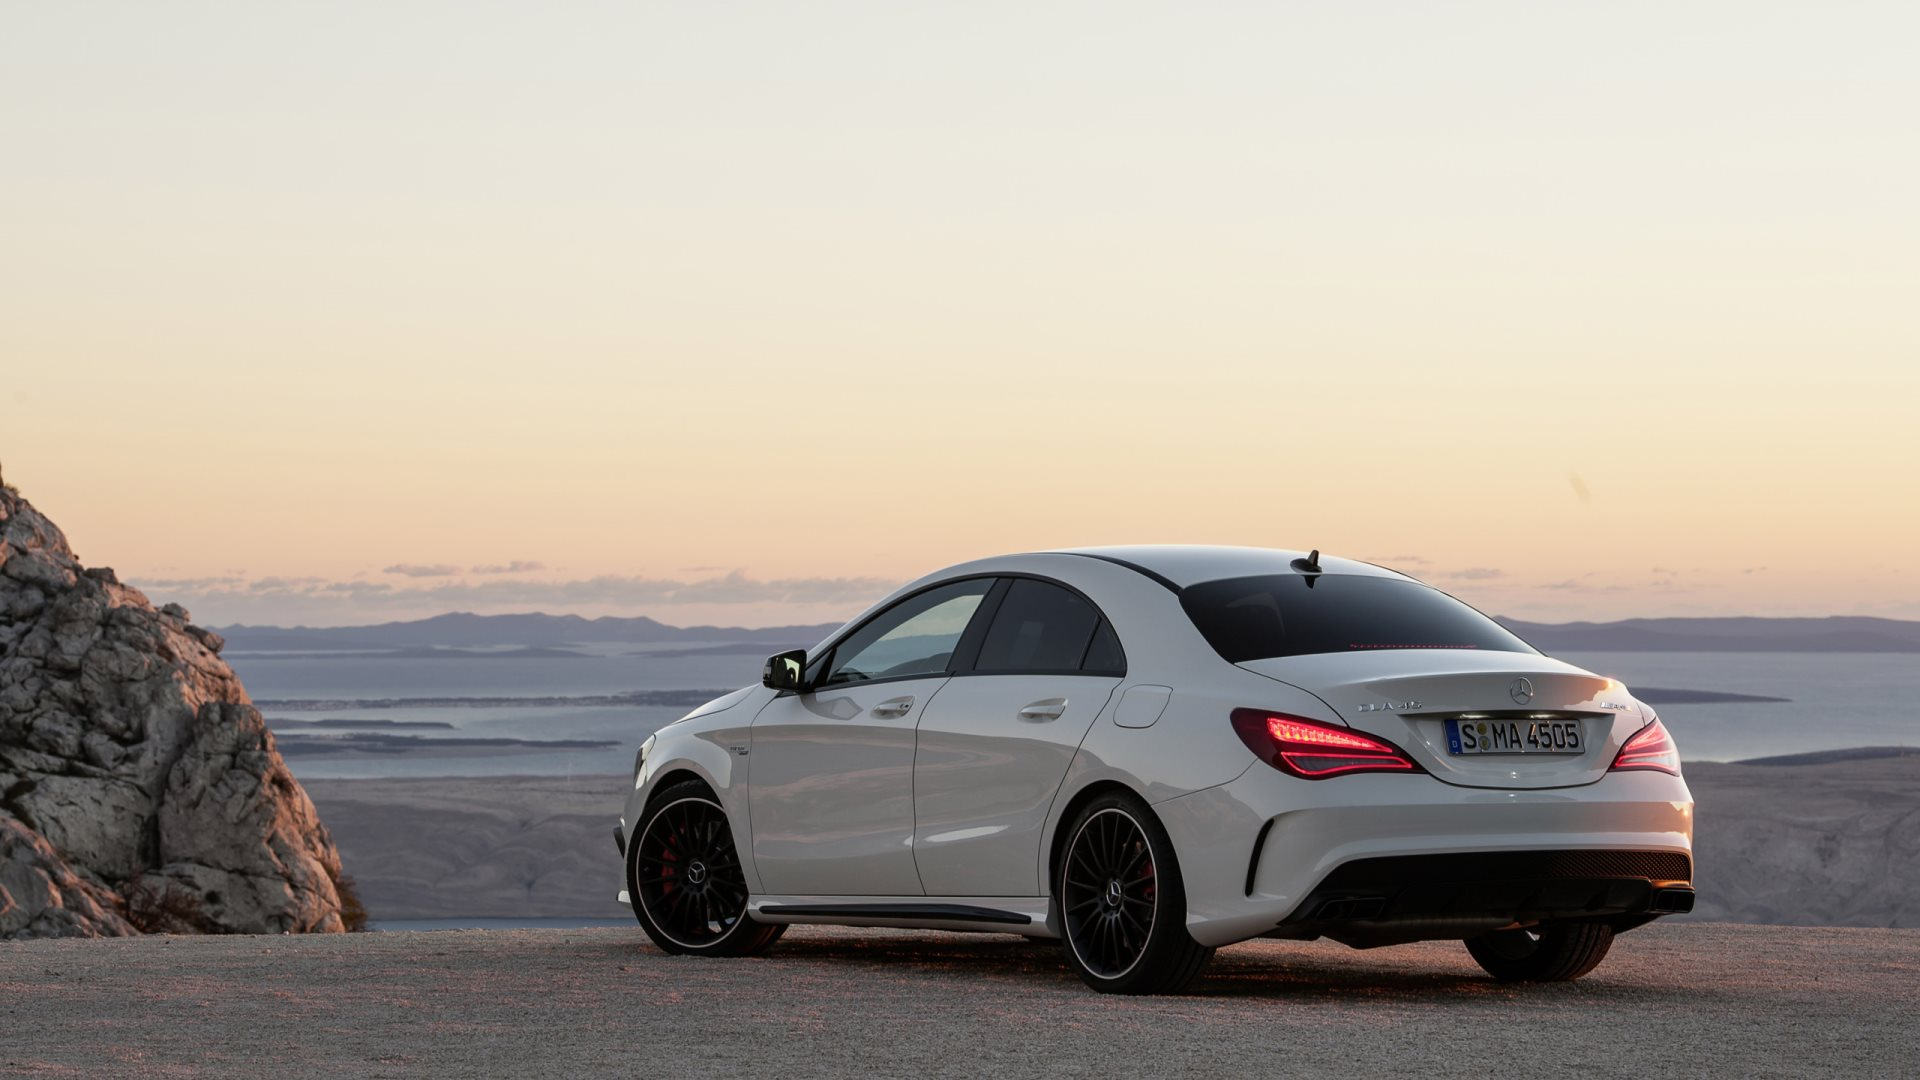 mercedes benz cla 45 amg wallpapers in hd 4k and wide sizes. Cars Review. Best American Auto & Cars Review